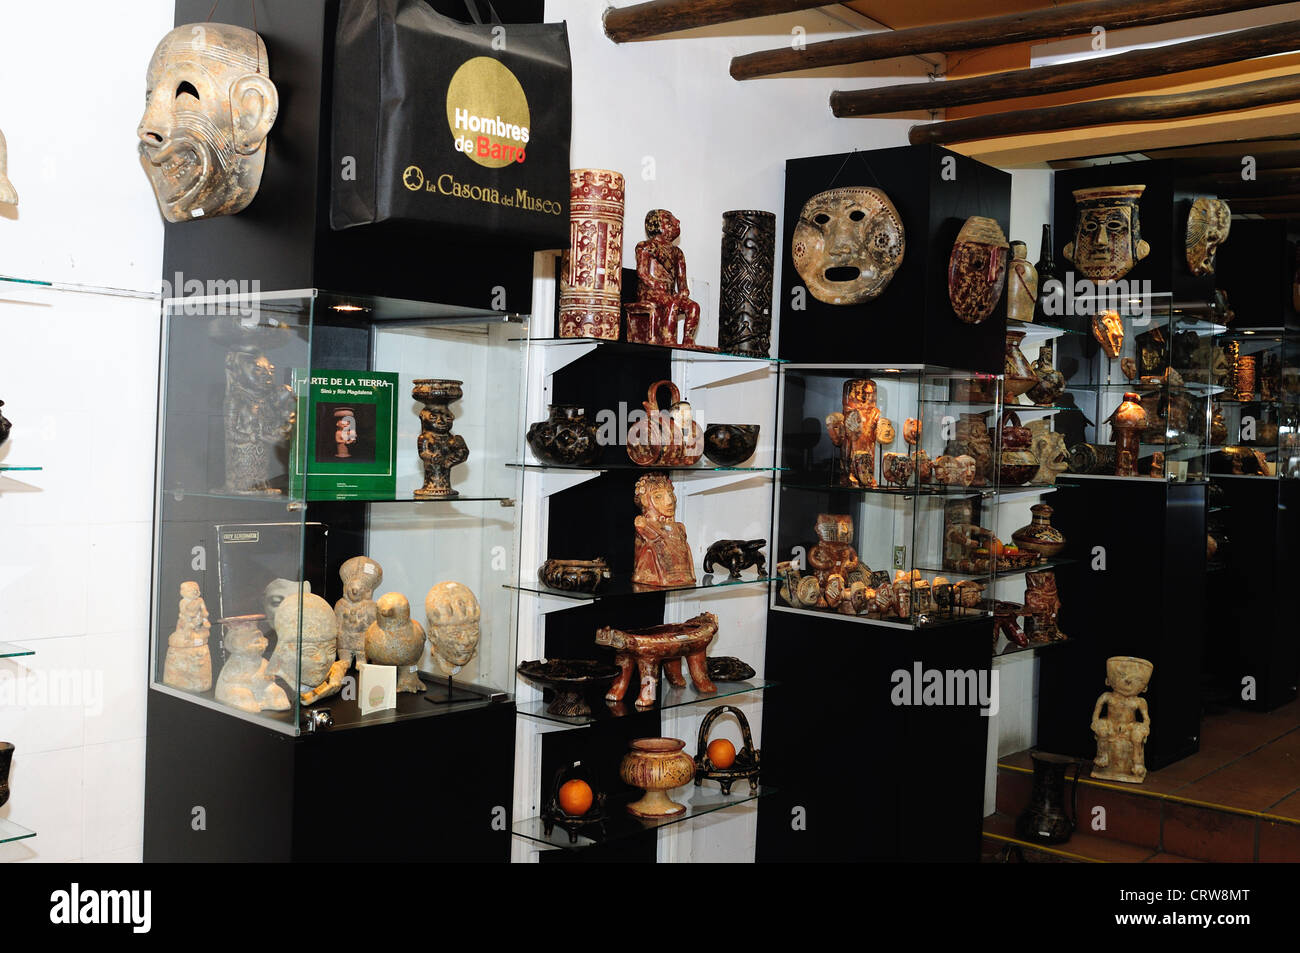 """ Hombres de Barro - La Casona del Museo "" in BOGOTA .Department of Cundimarca. COLOMBIA Stock Photo"